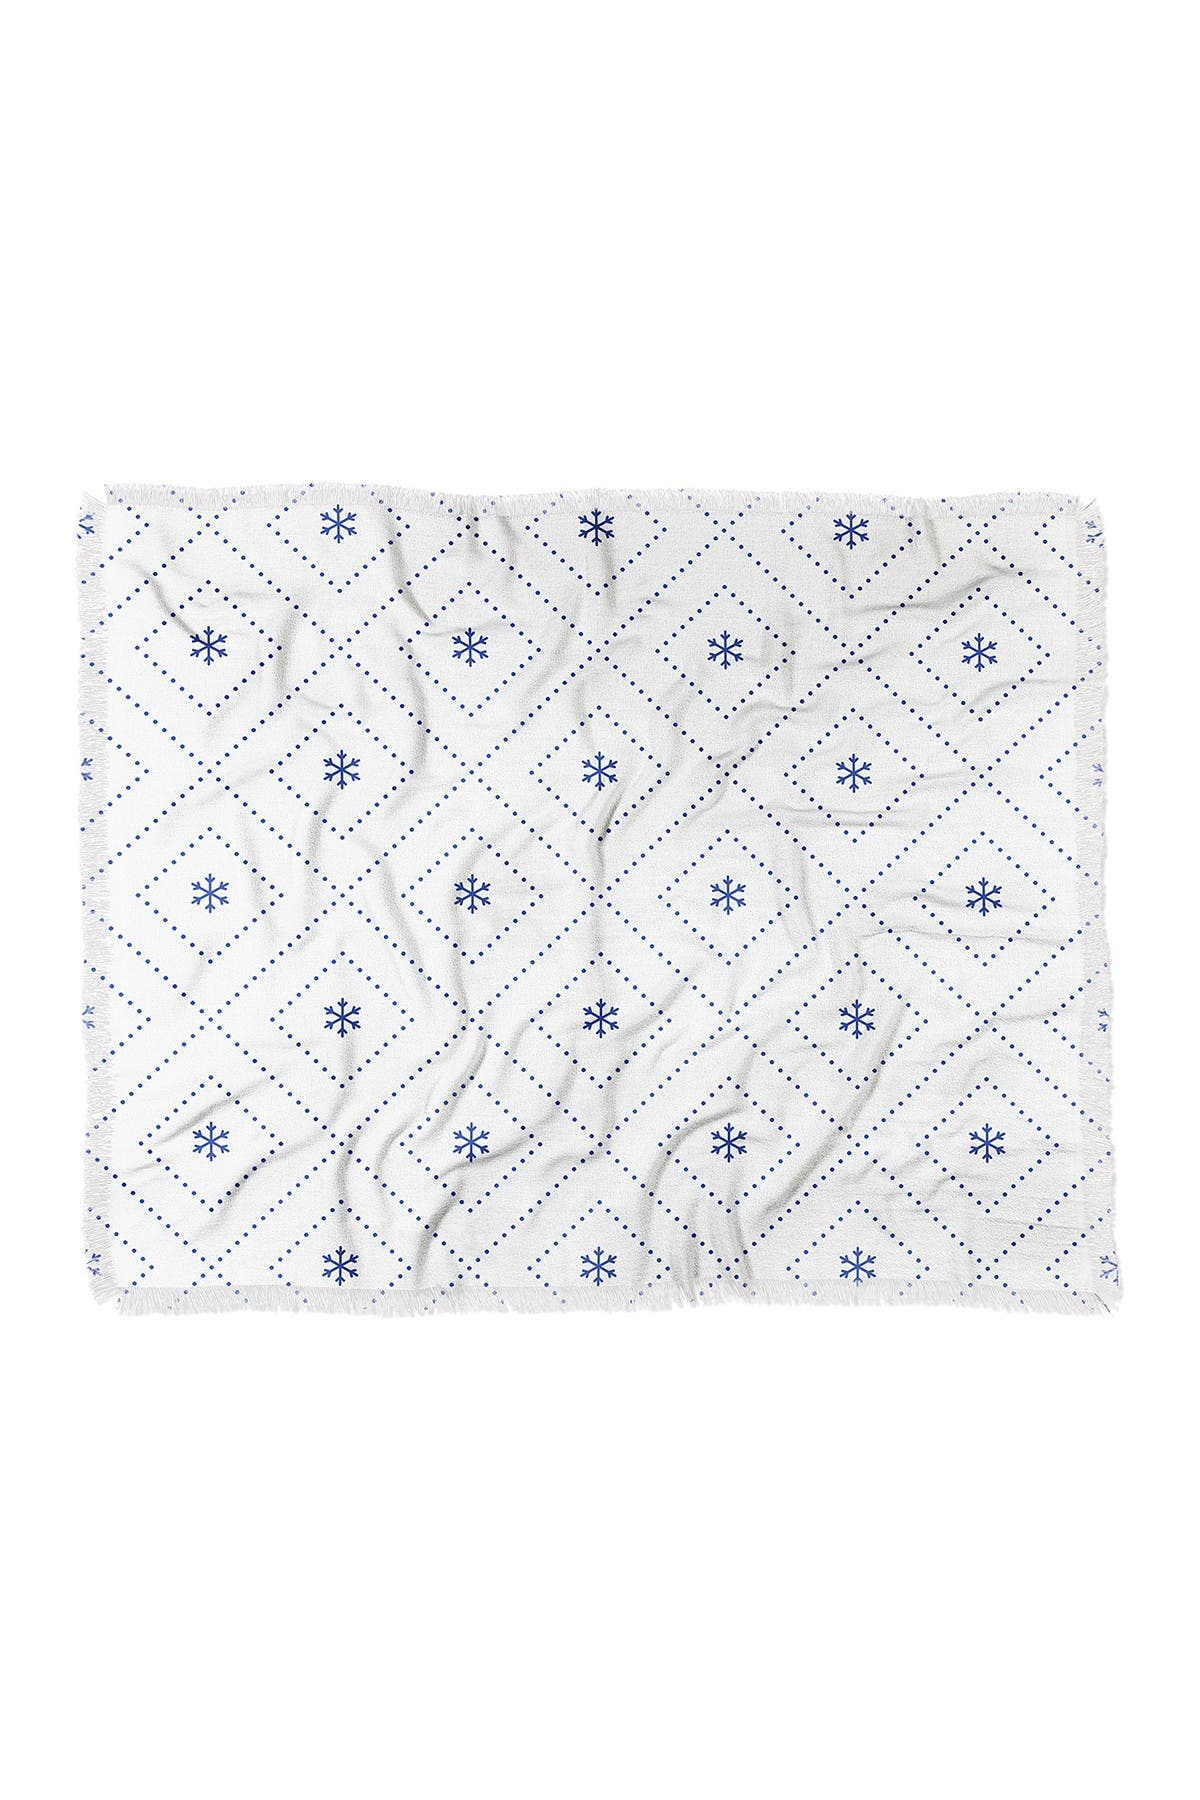 "Image of Deny Designs Lara Kulpa Dreamy Classic Blue Woven Throw Blanket - 60"" x 50"""